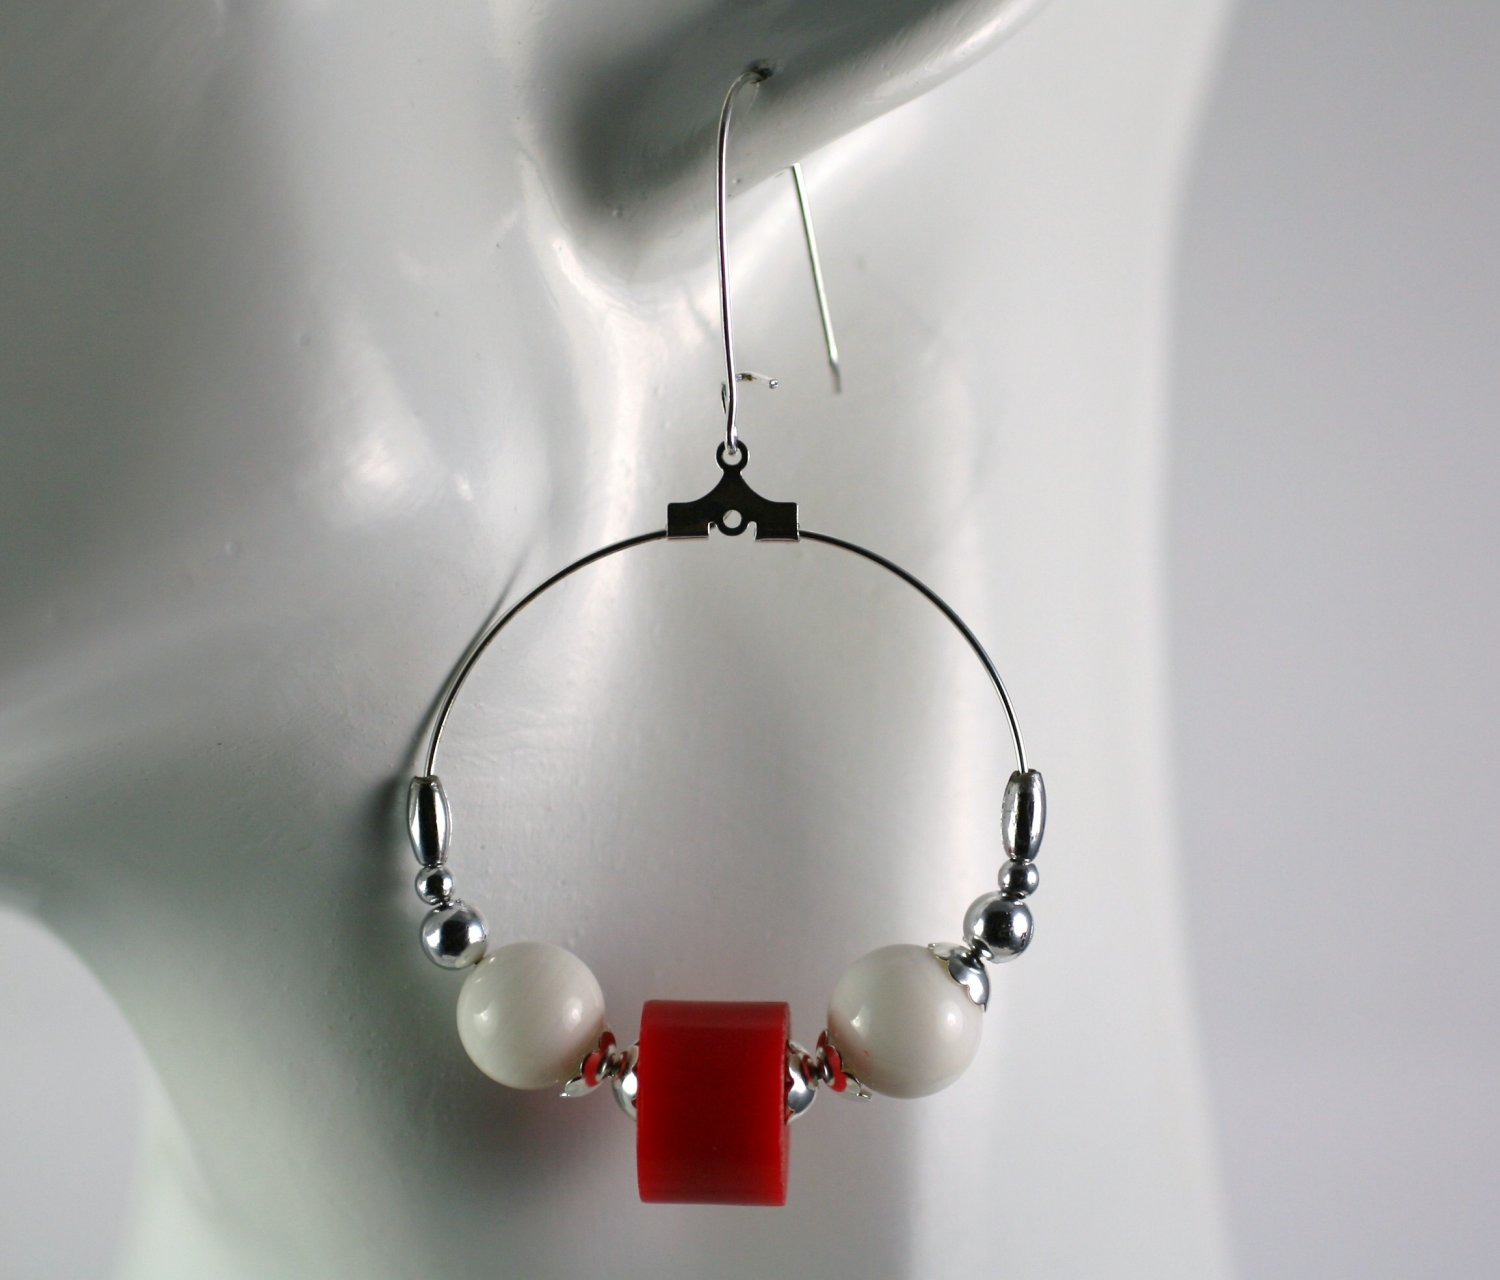 Silver Hoop Earrings with Red and White Vintage Beads 1.5 in.  Handcrafted Jewelry